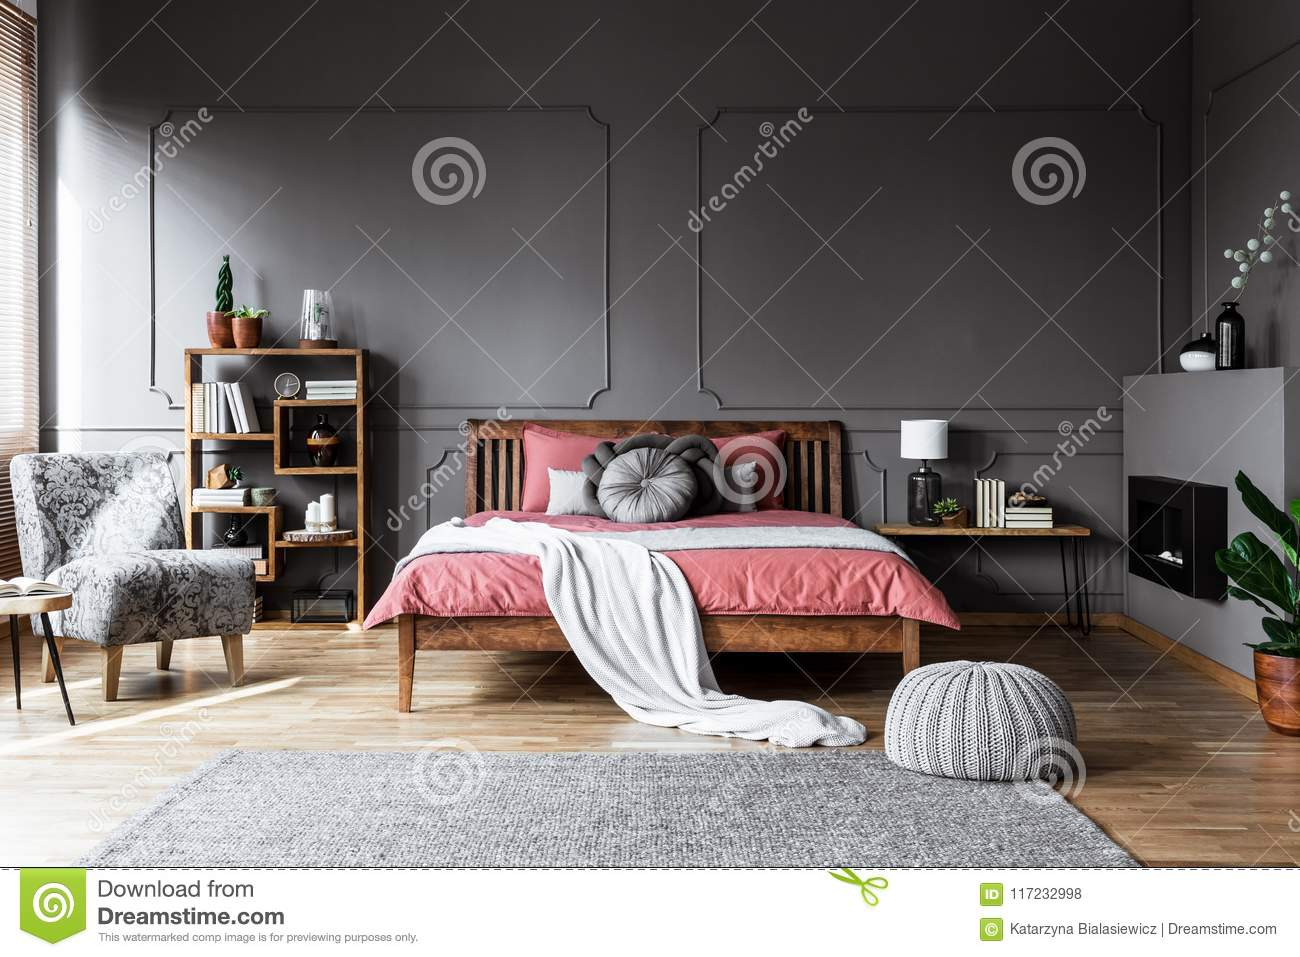 Real photo of a cozy bedroom interior with wooden bed in the mid